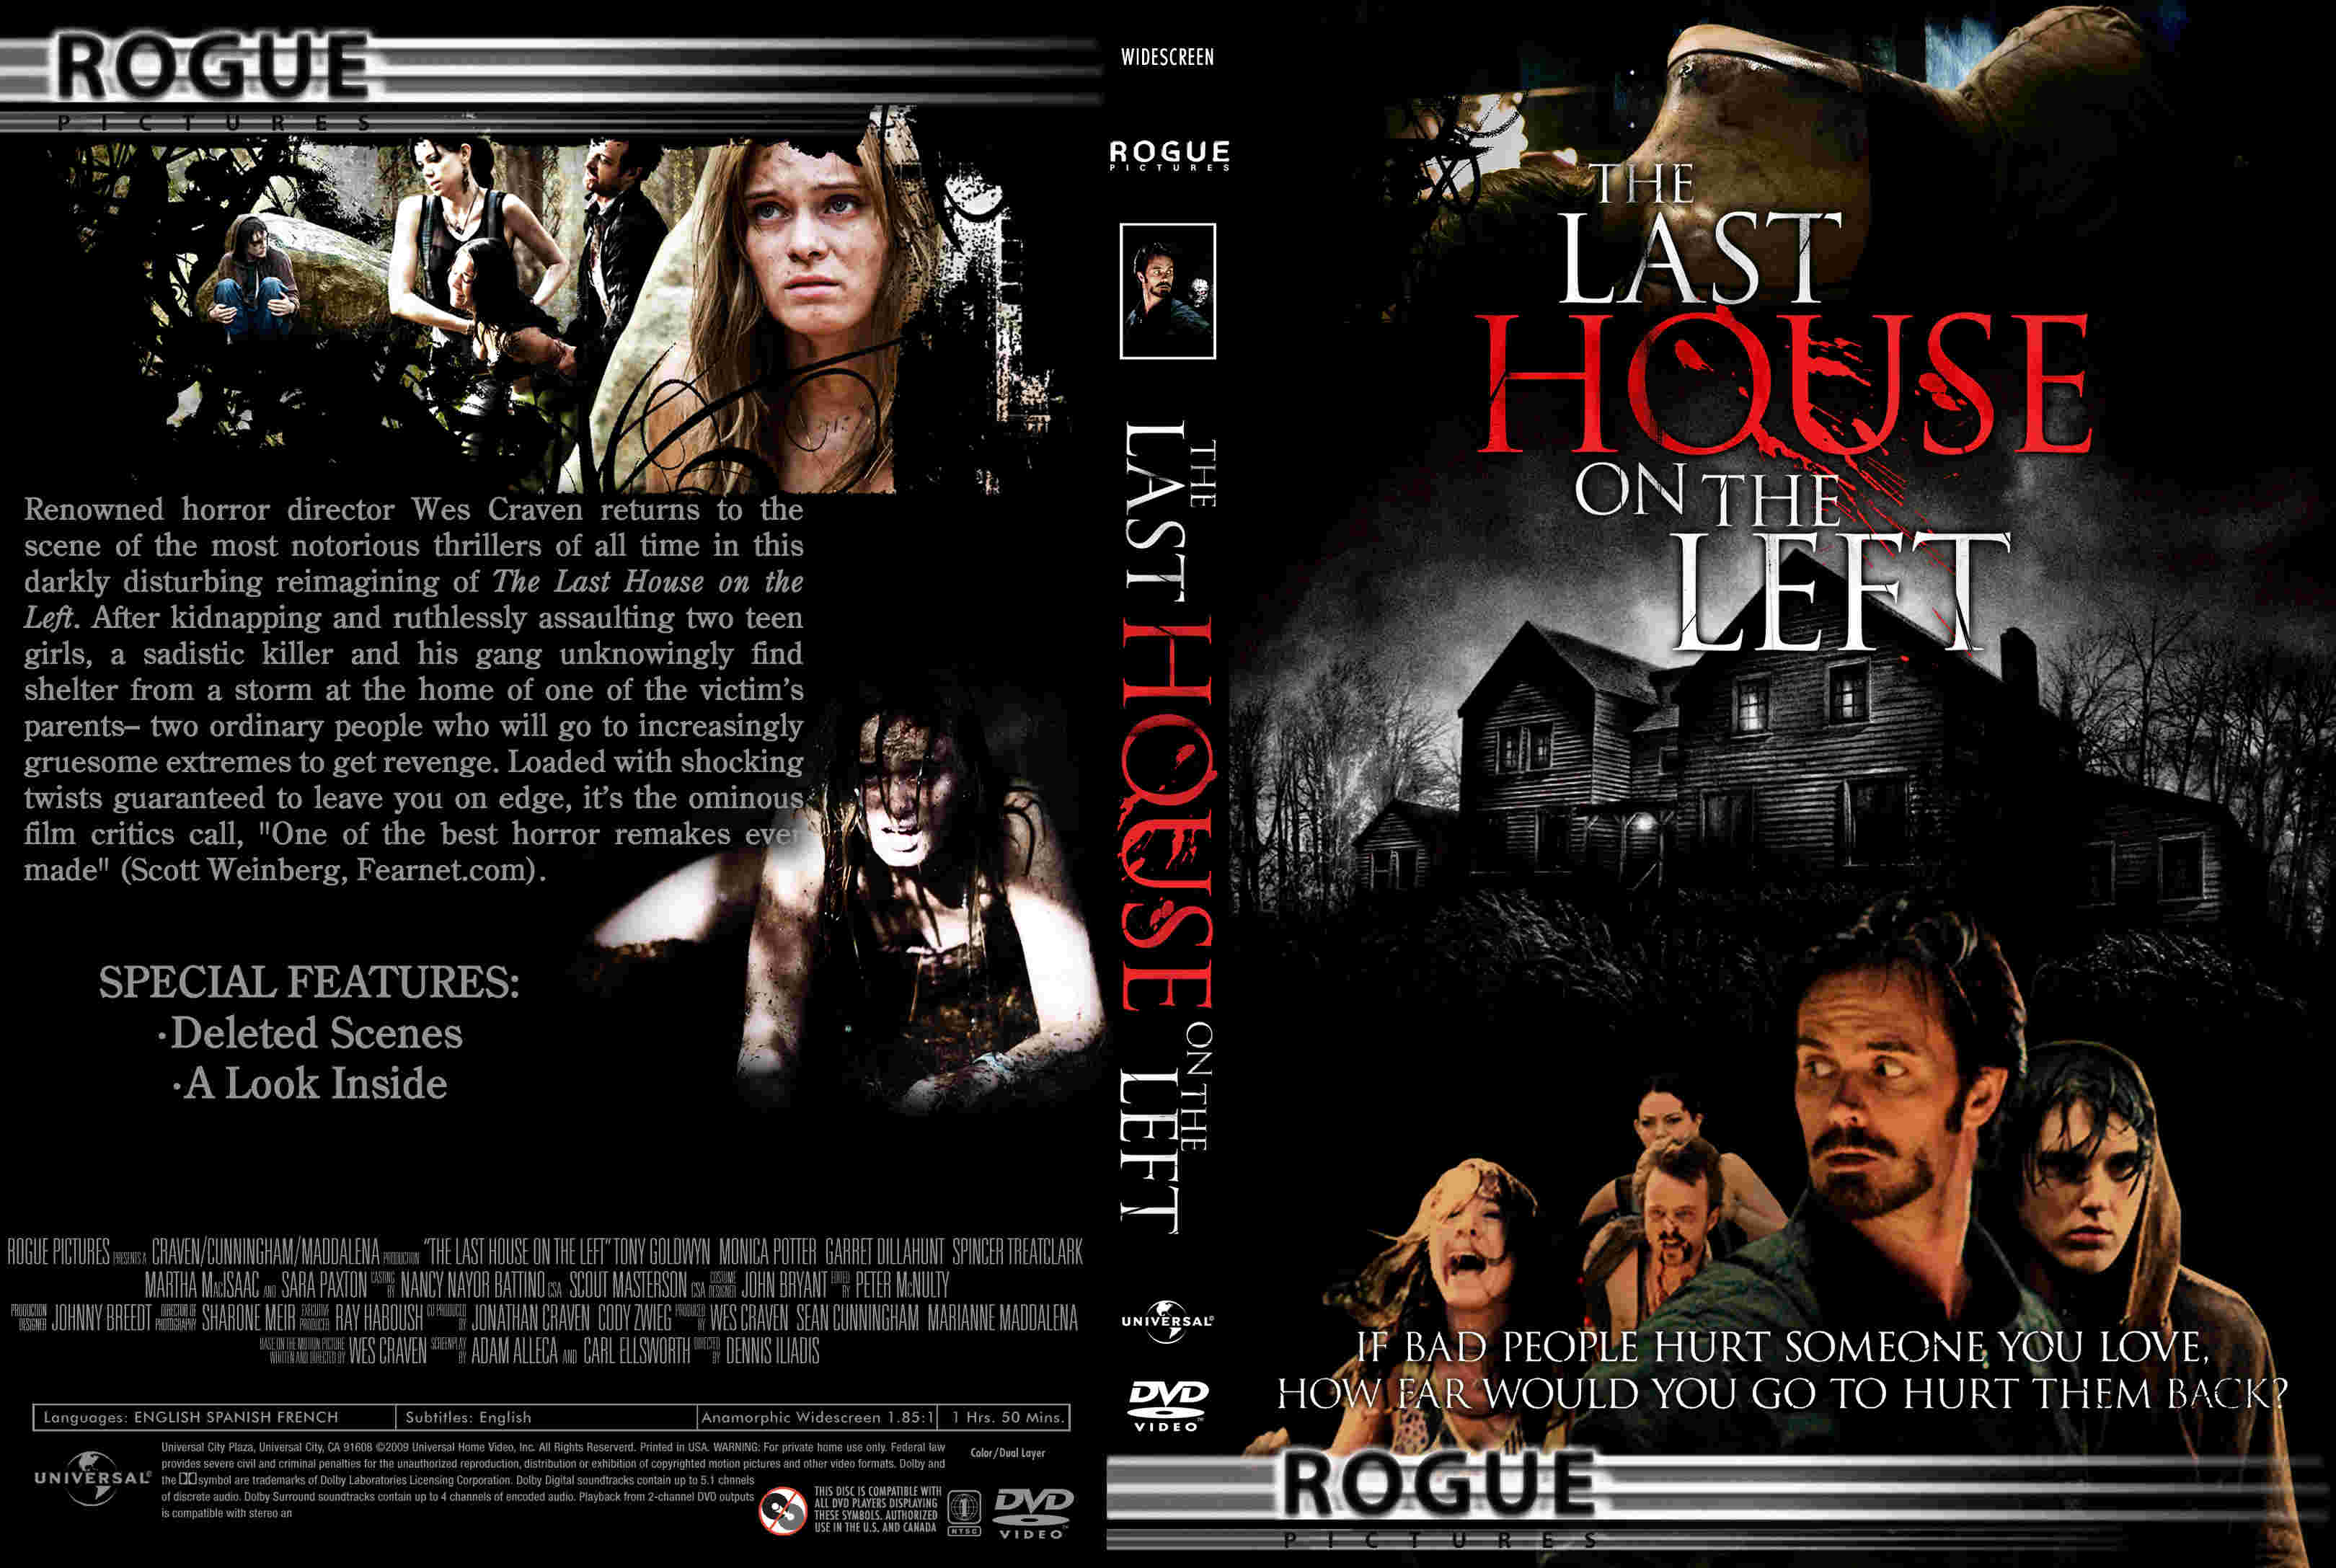 Staff Pick 4 The Last House The Left The Last House